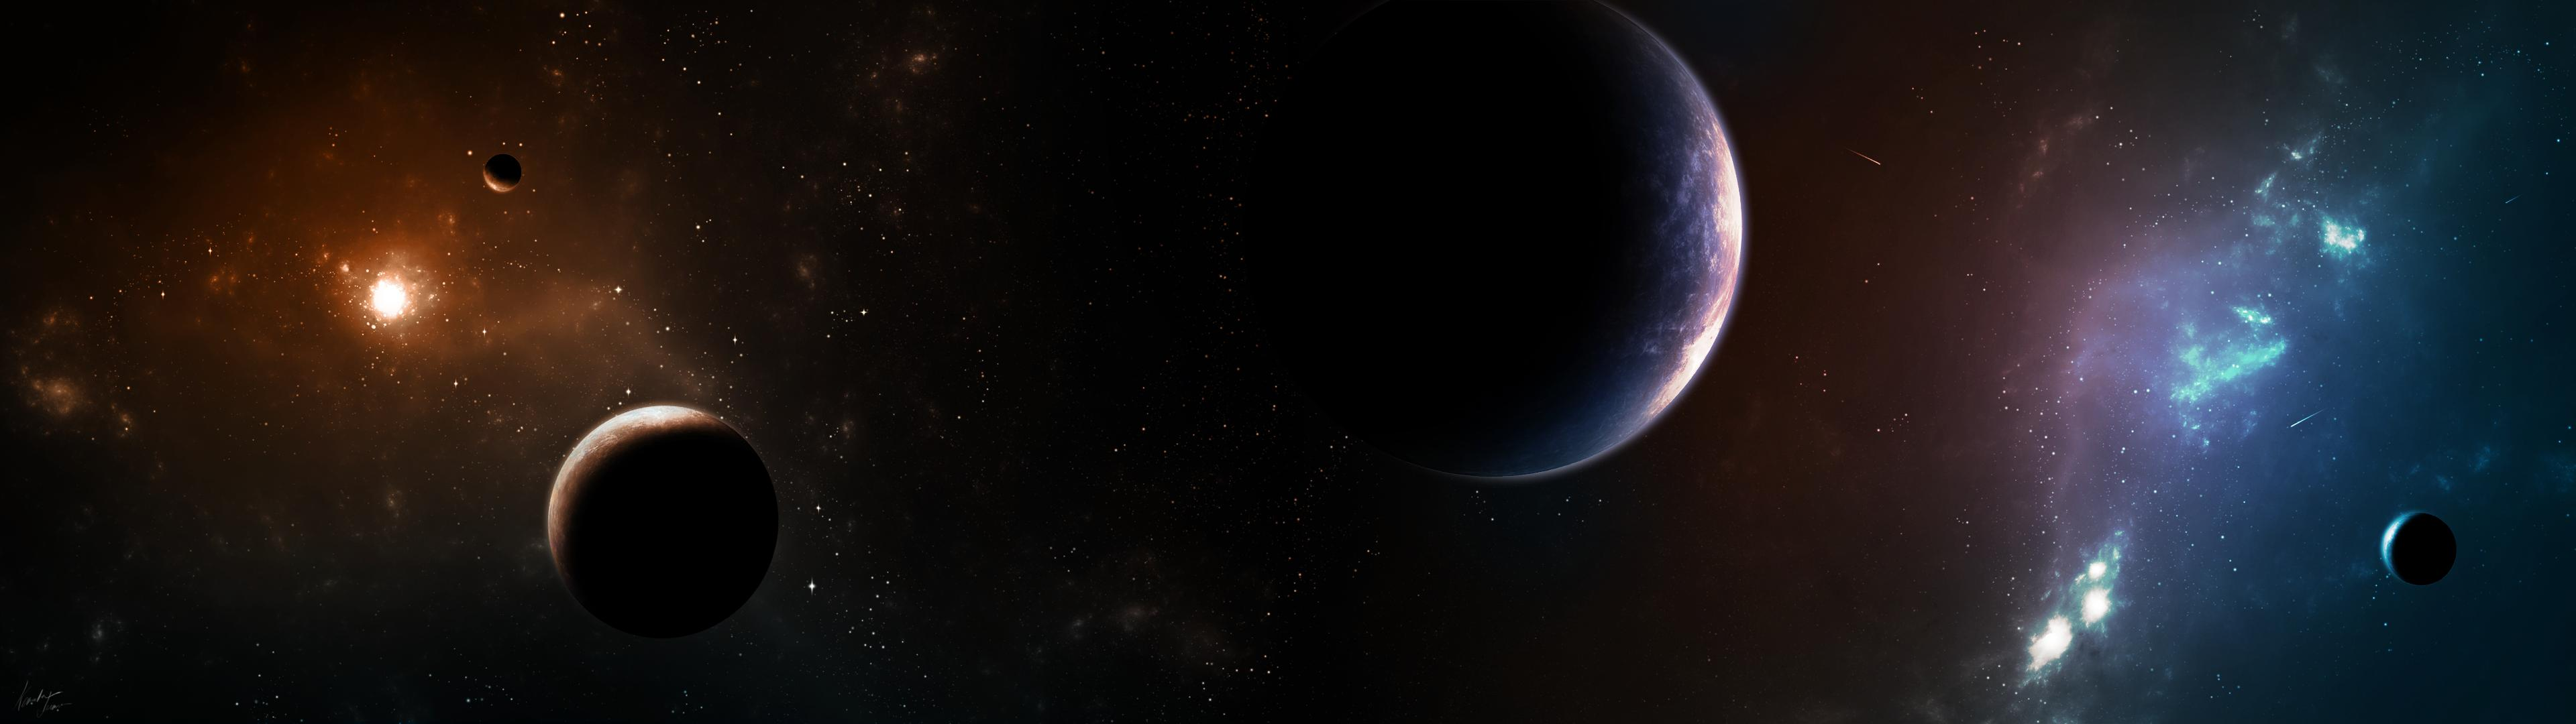 My dual screen space wallpaper [3840x1080] Wallpaper Wallpapers 3840x1080